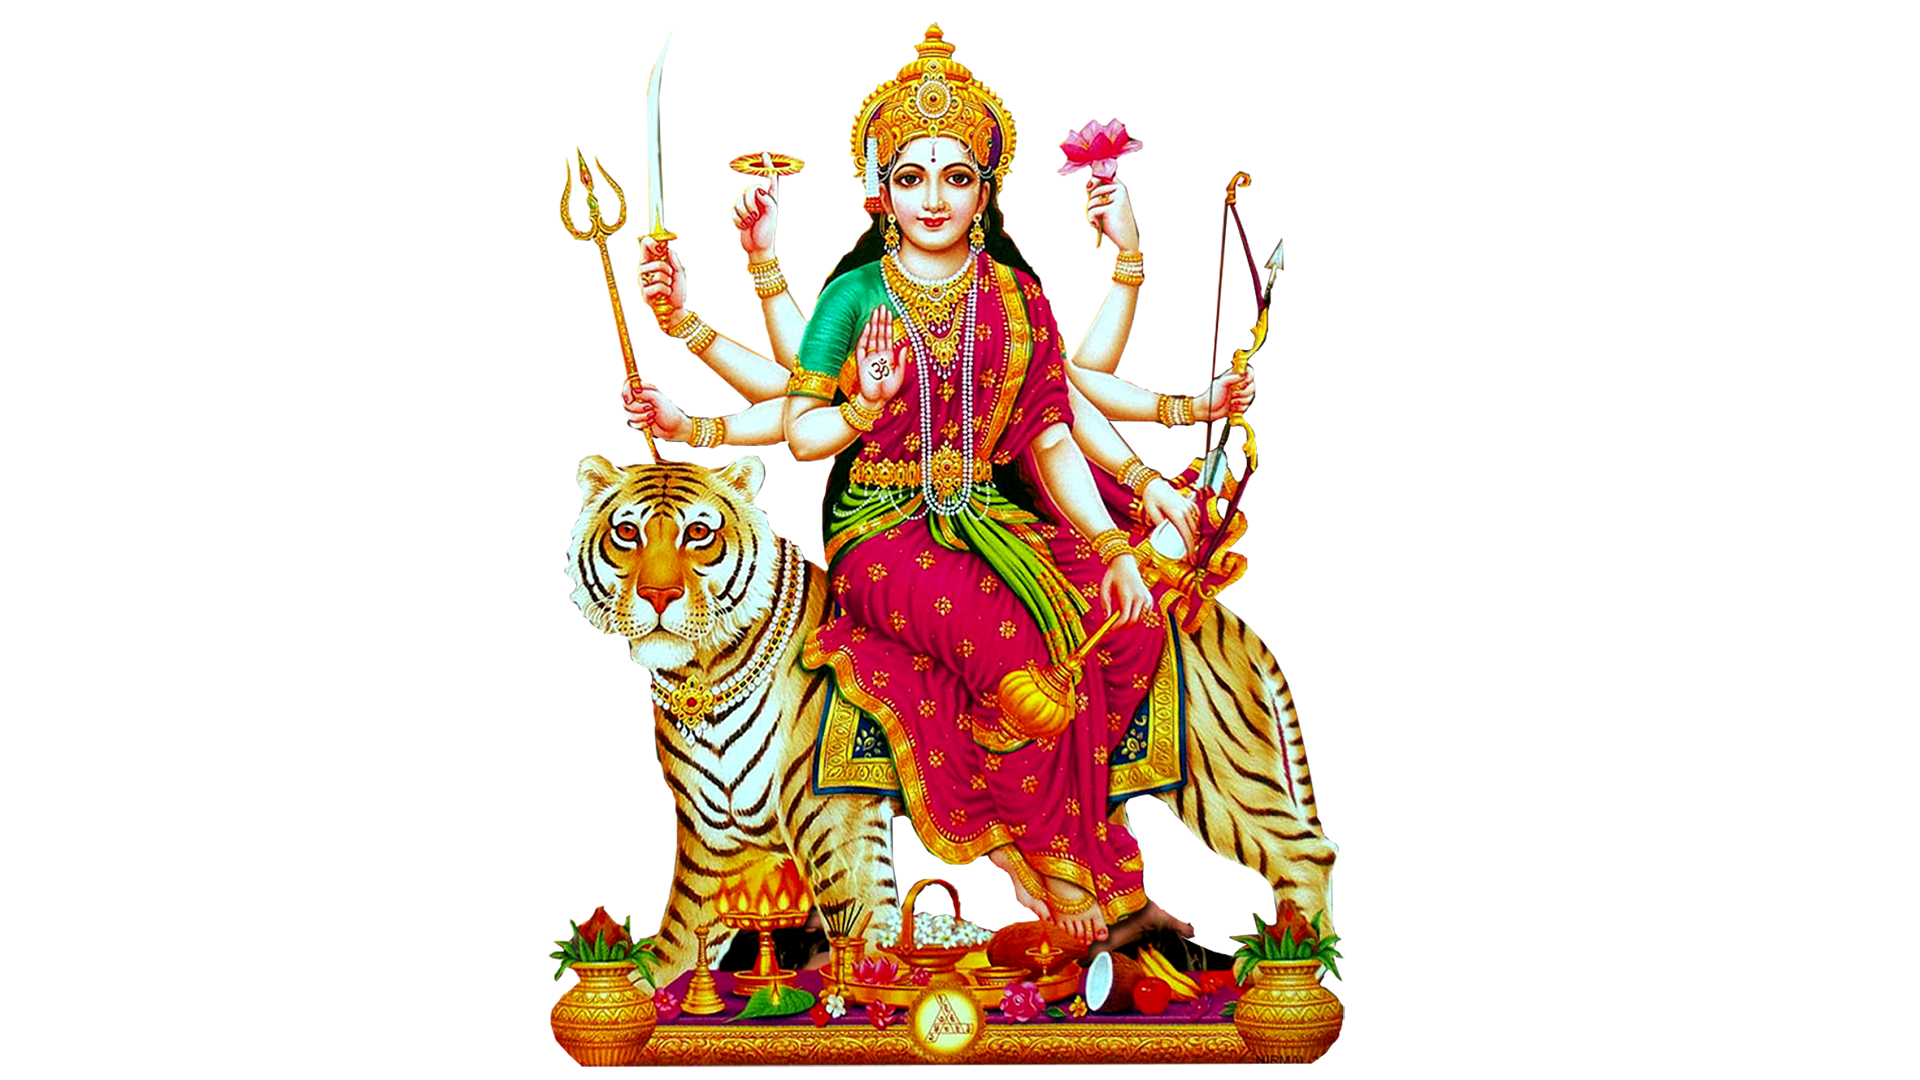 Maa Durga Png Hd Large For Banner Design